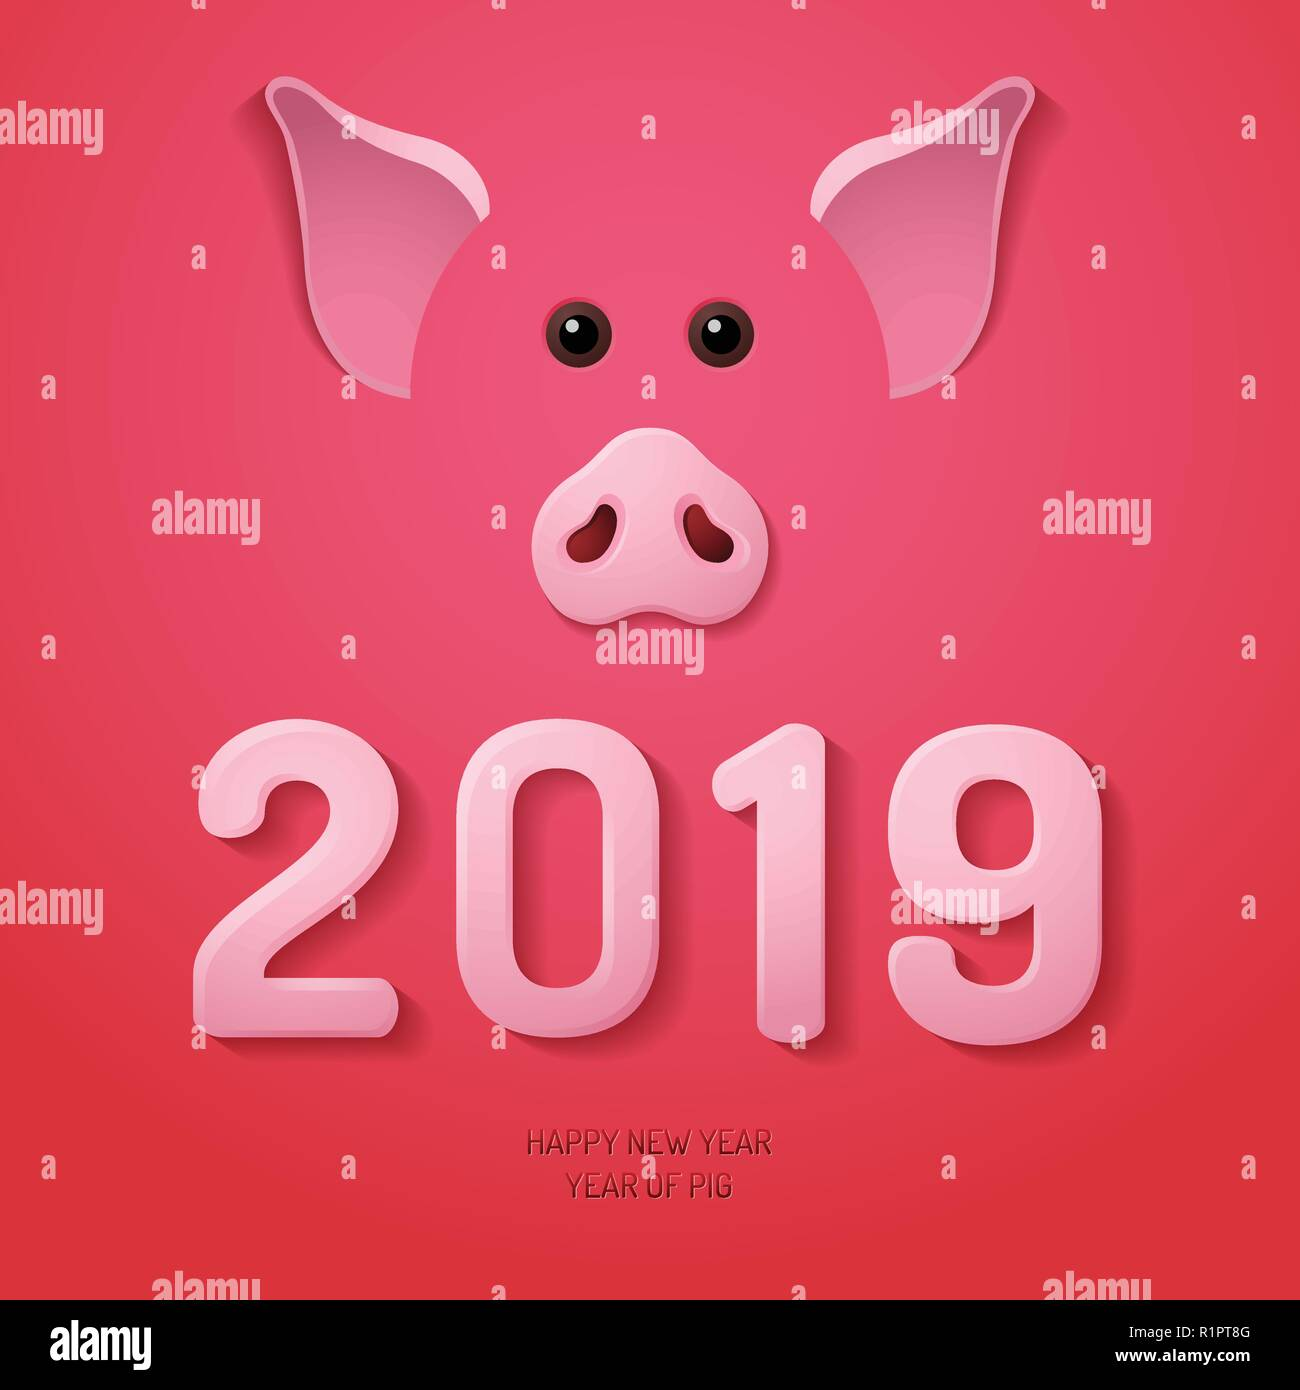 Chinese New Year 2019 Pig Snout - Stock Vector